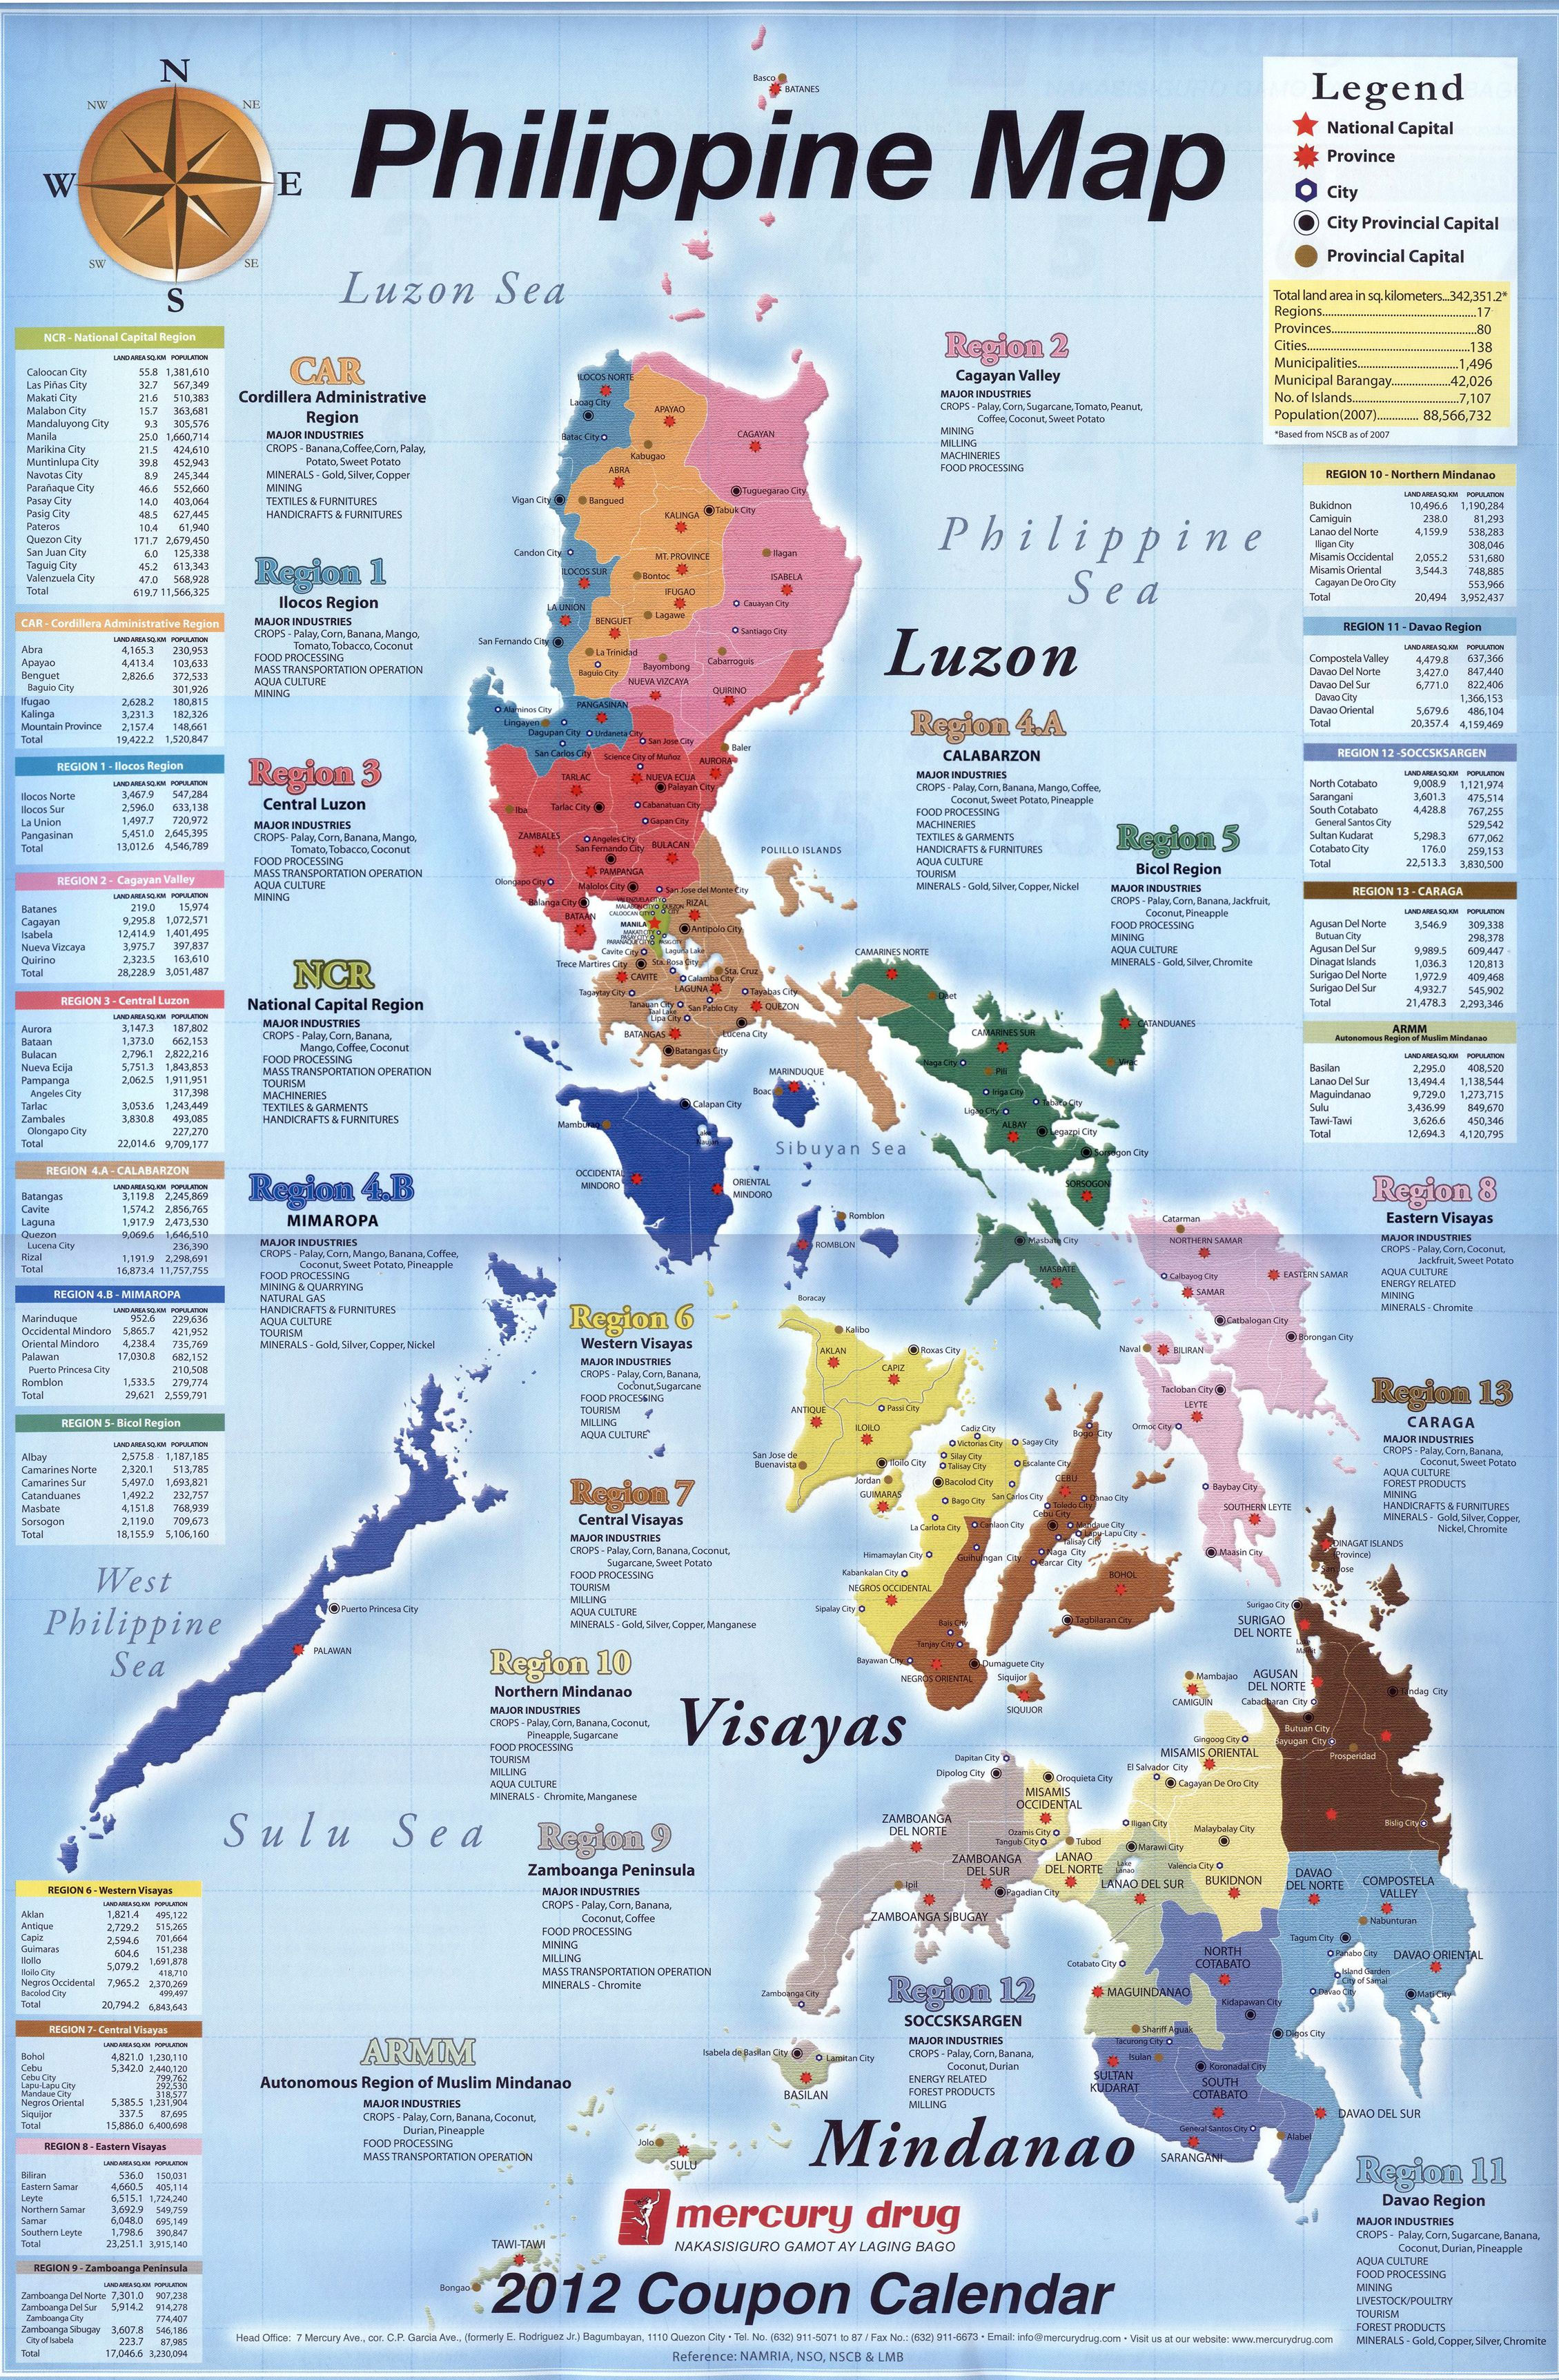 Pin by Philippines Sweden on PHILIPPINES SWEDEN in 2019 ...